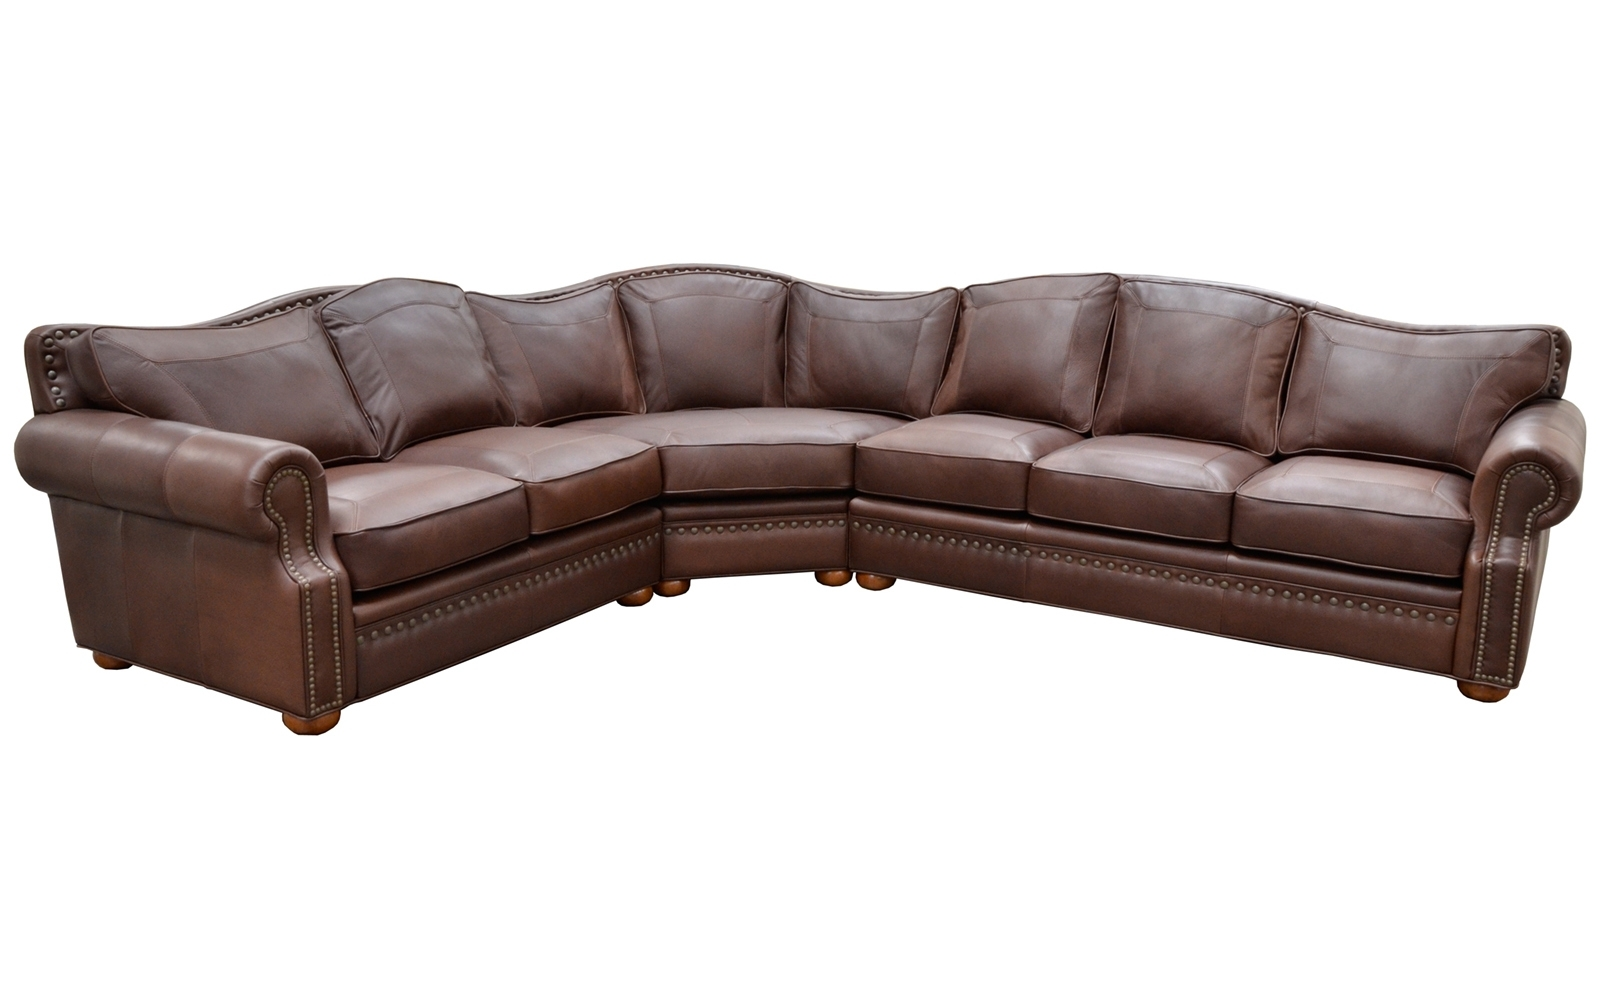 Newest Tucson Sectional Sofas Regarding Tucson Sectional – Arizona Leather Interiors (View 2 of 15)